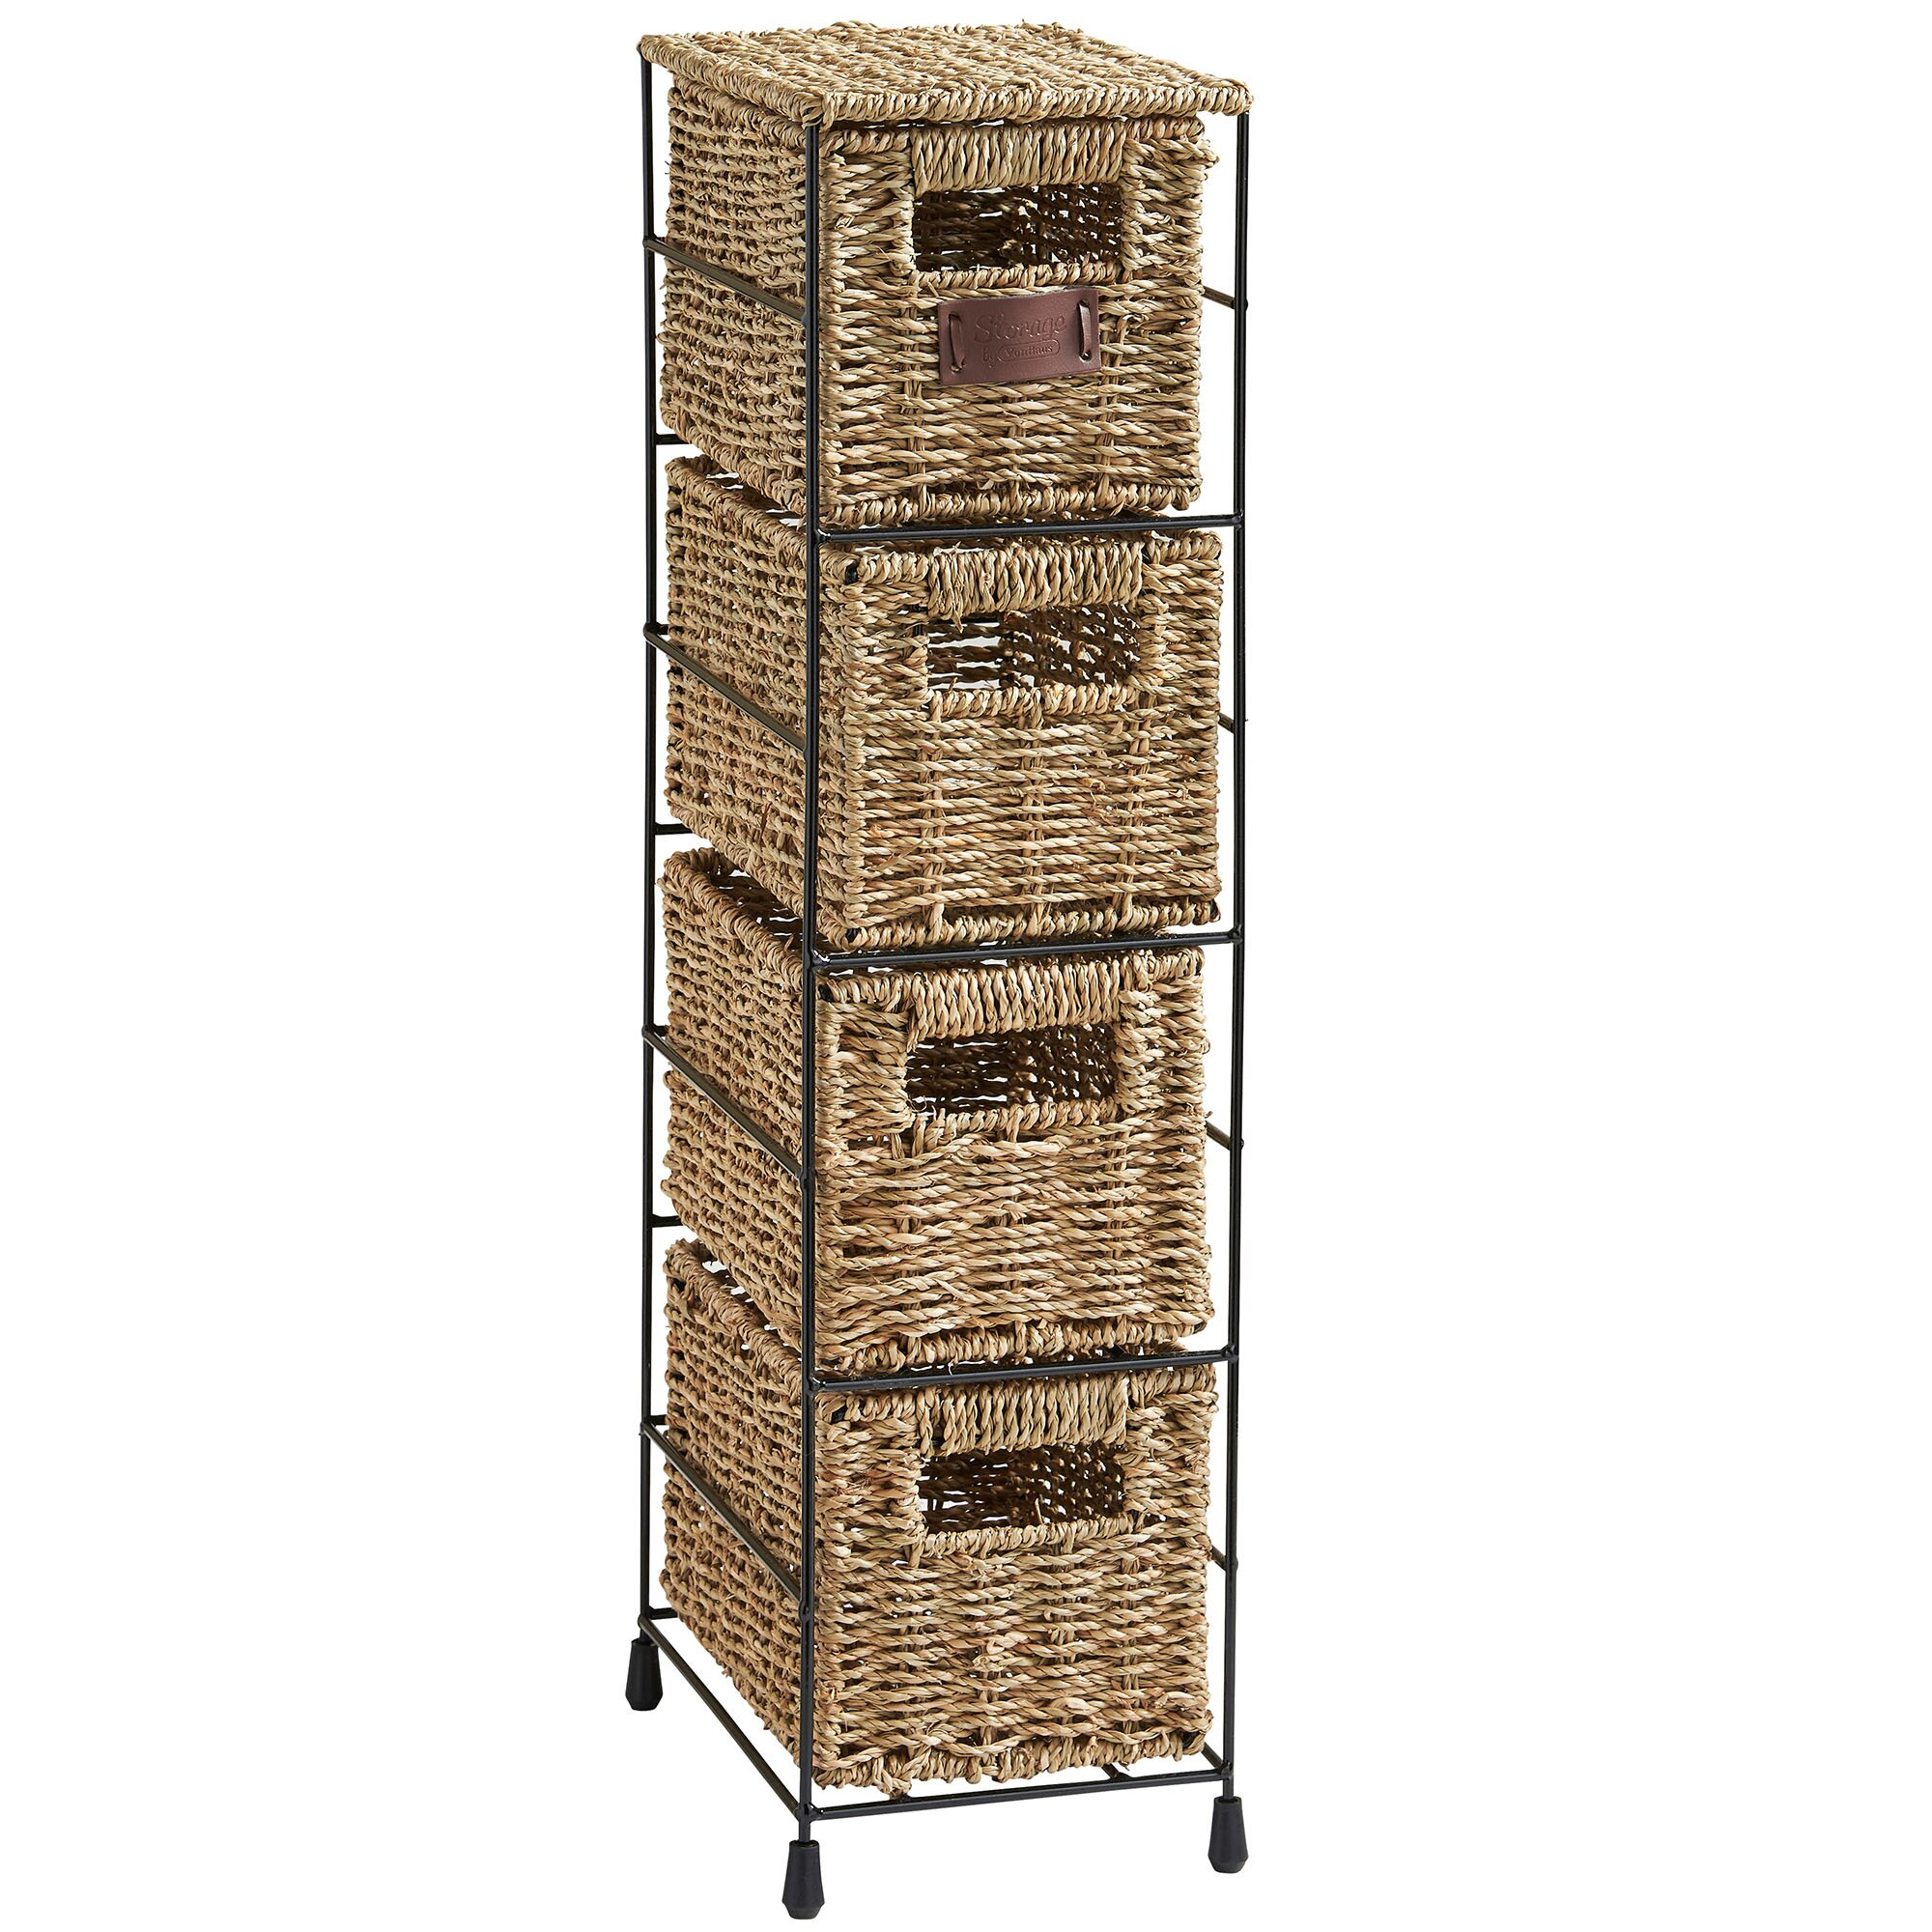 Vonhaus 4 Tier Seagrass Storage Basket Tower Unit